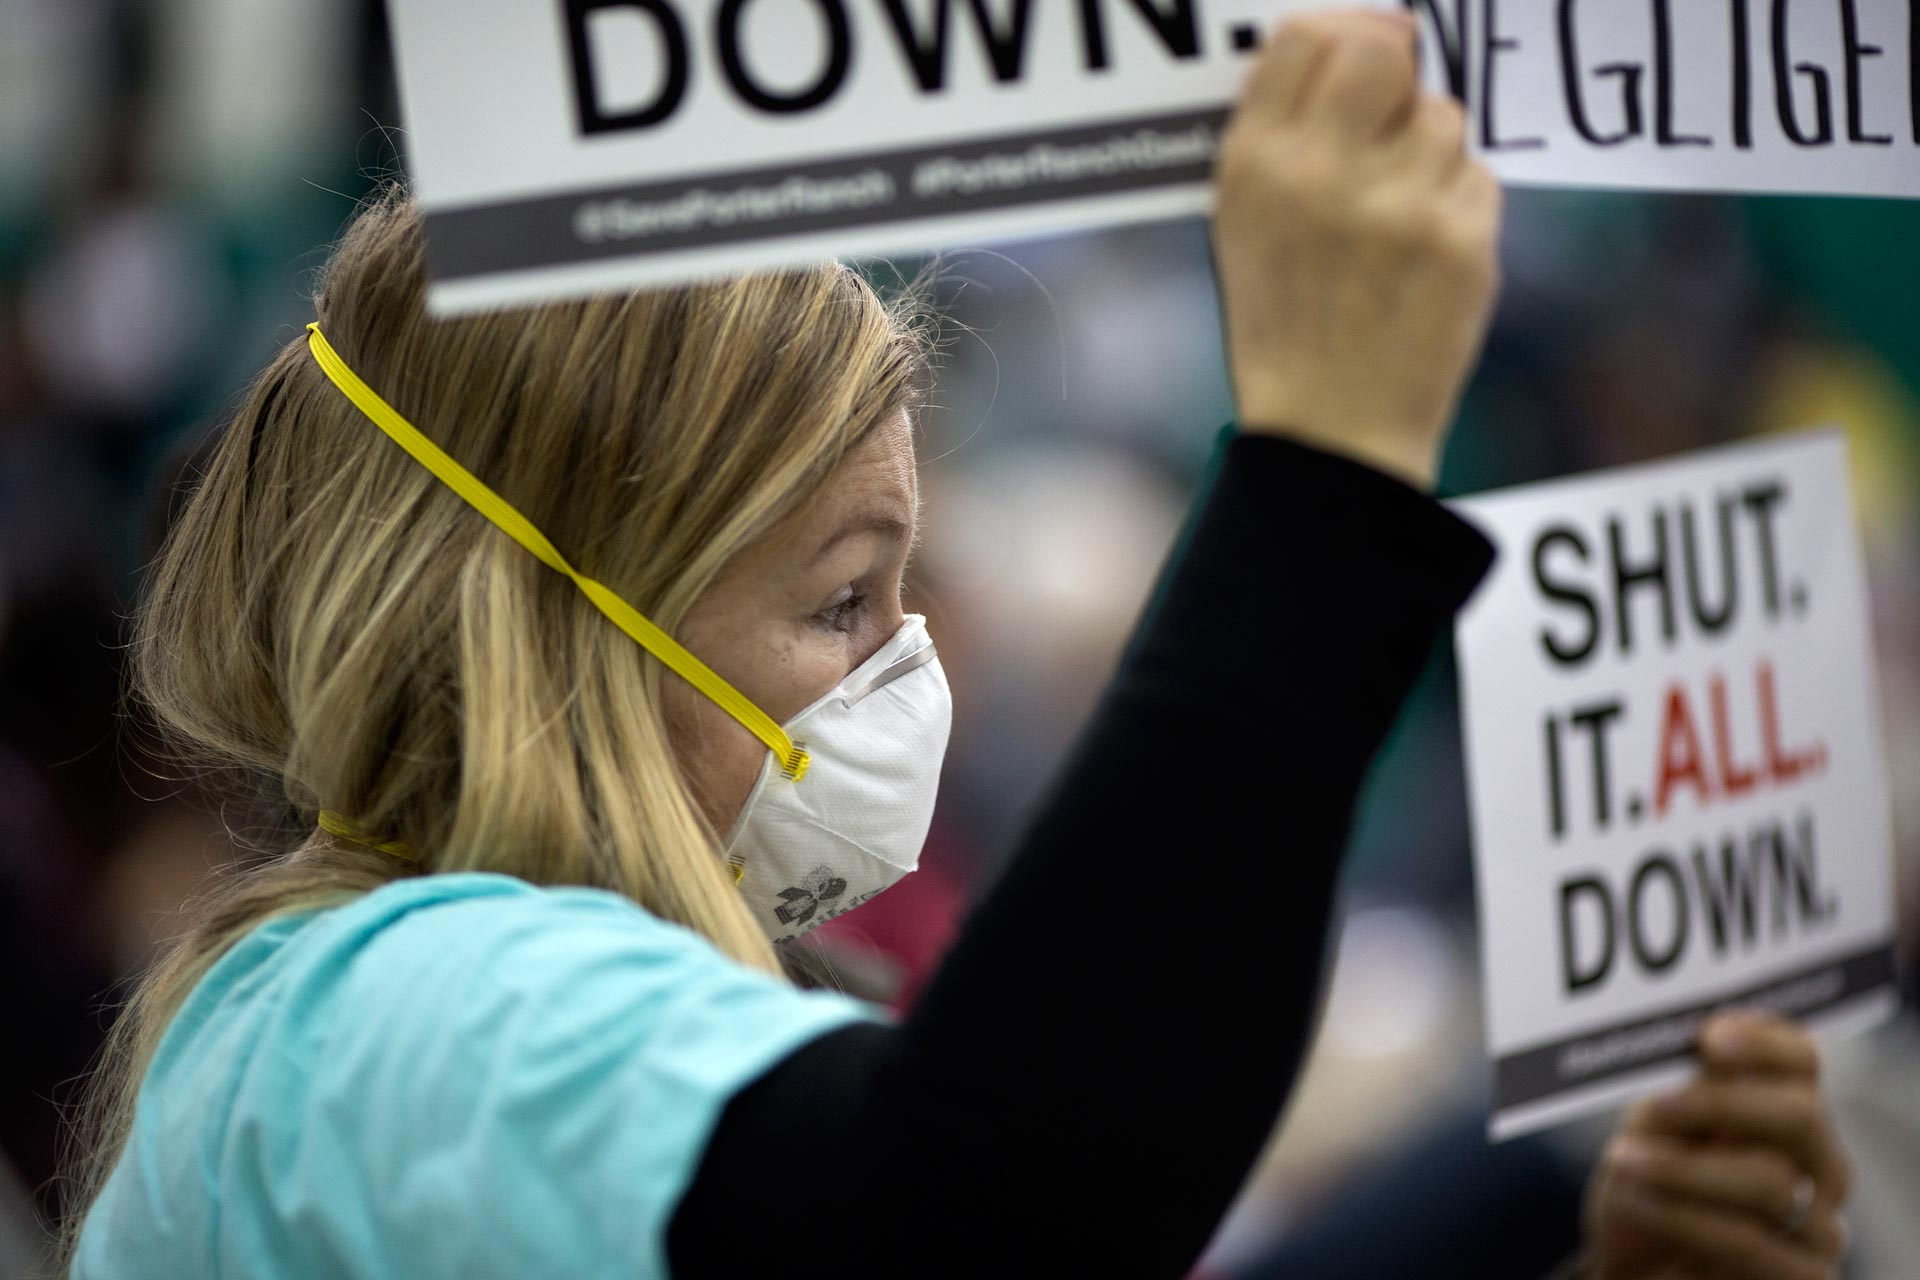 A woman holds a sign at a public hearing before the South Coast Air Quality Management District (AQMD) regarding a proposed stipulated abatement order to stop the massive natural gas leak, on January 16, 2016 in Granada Hills, near Porter Ranch.